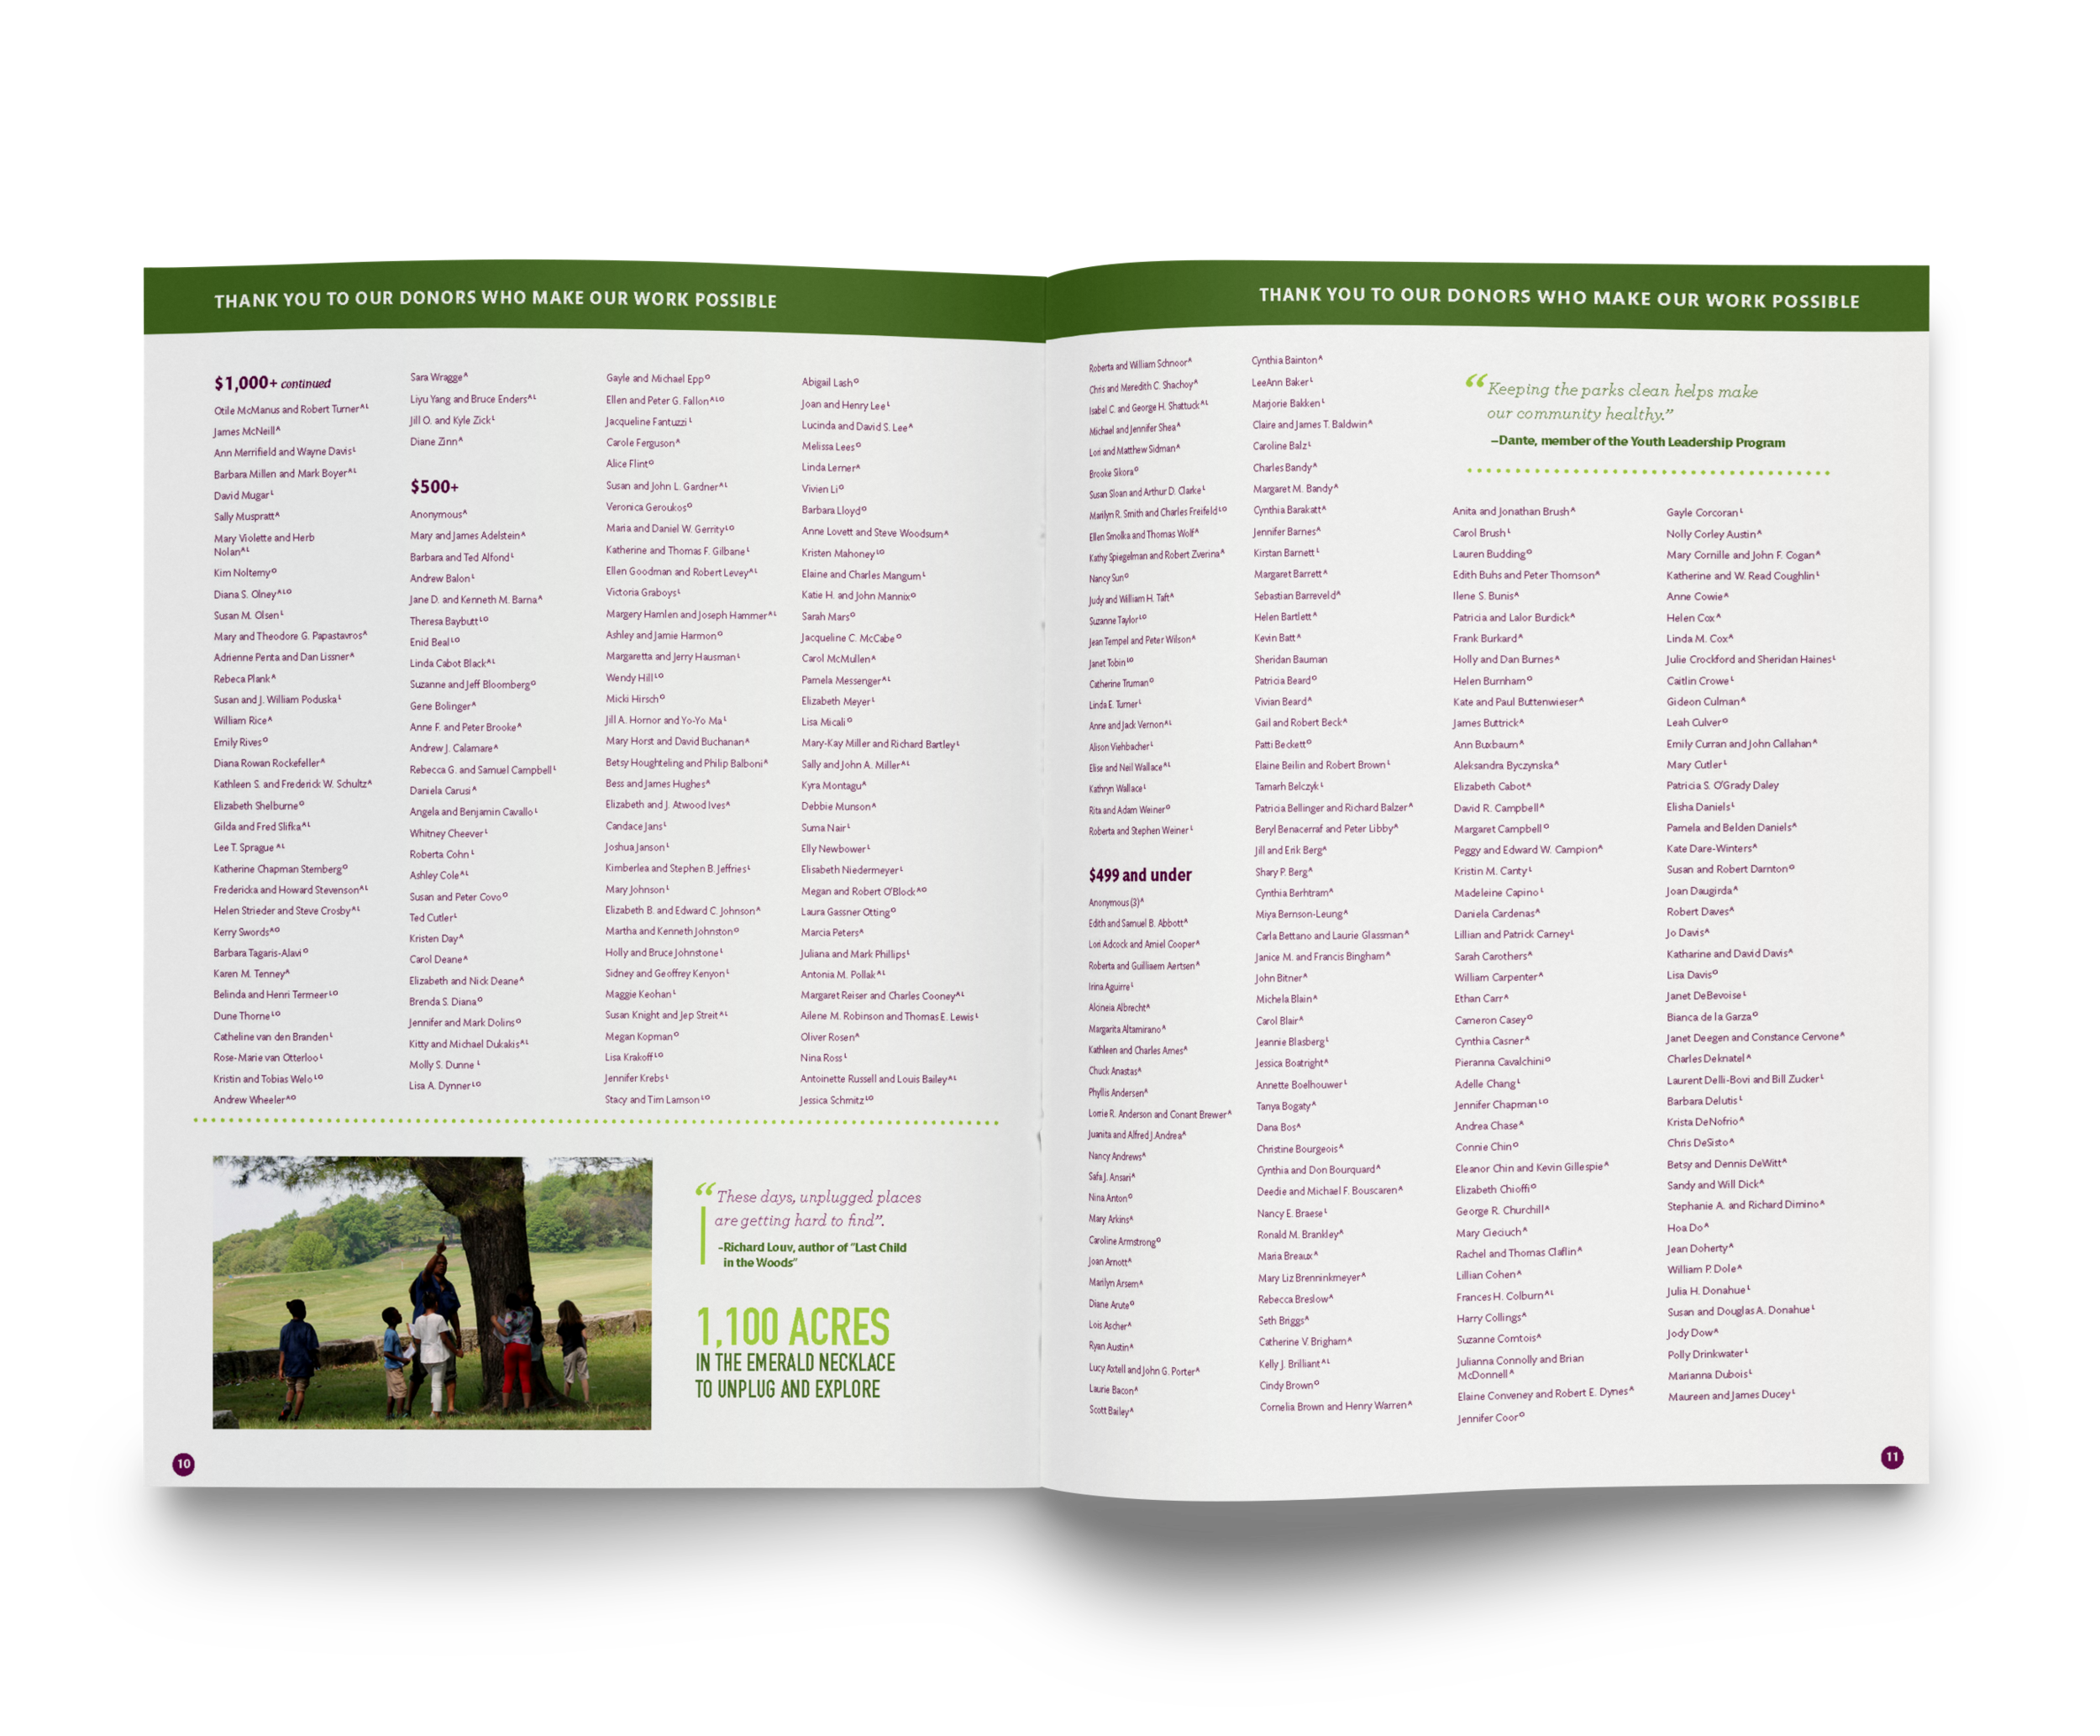 Annual report for a parks advocacy organization